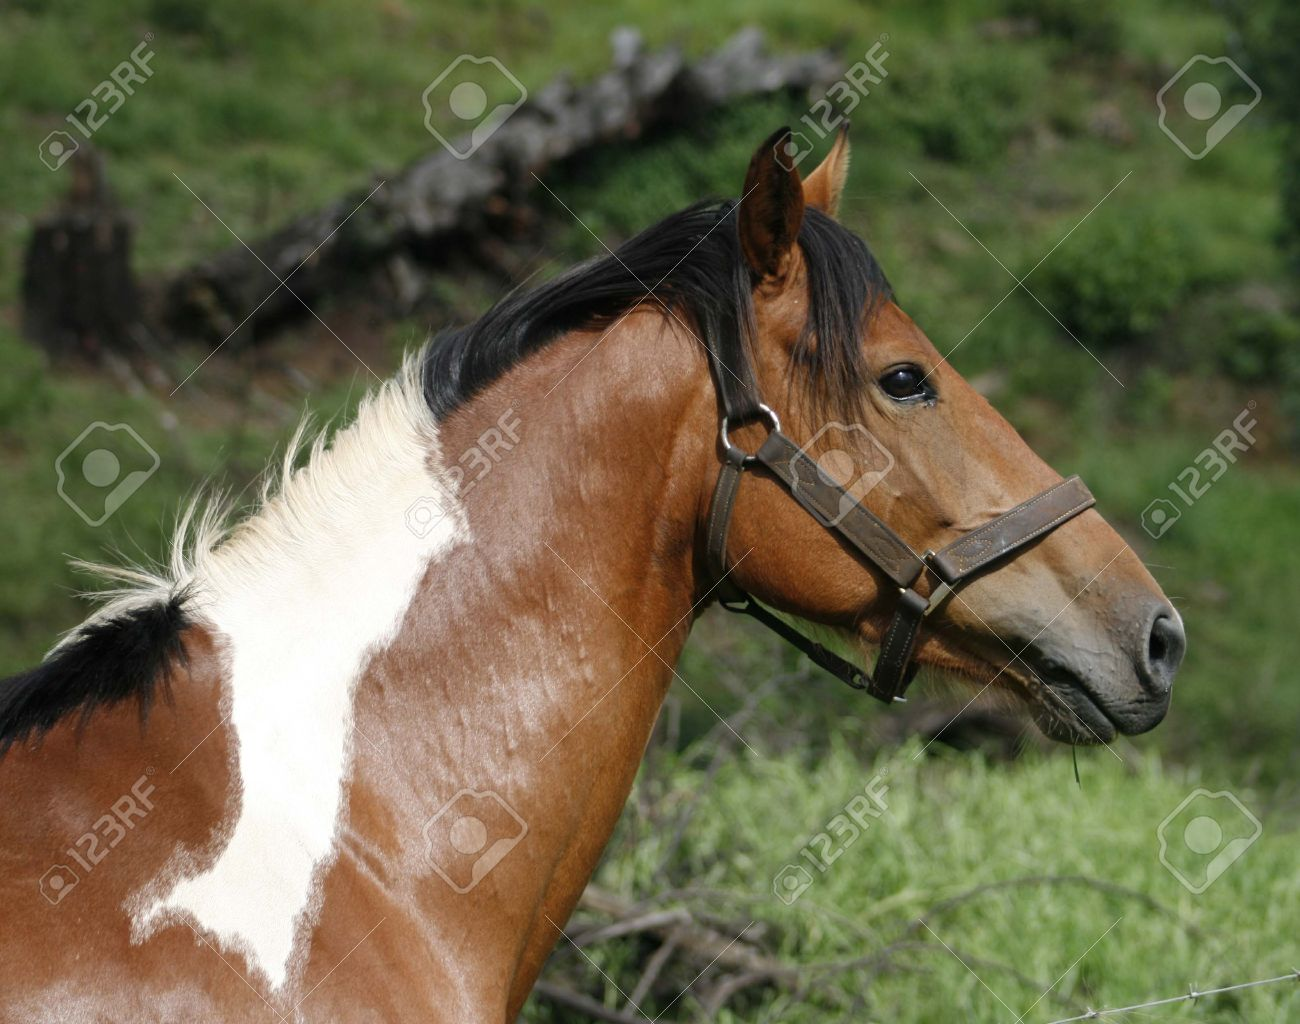 Painted Horse Head Side View Stock Photo Picture And Royalty Free Image Image 12899211